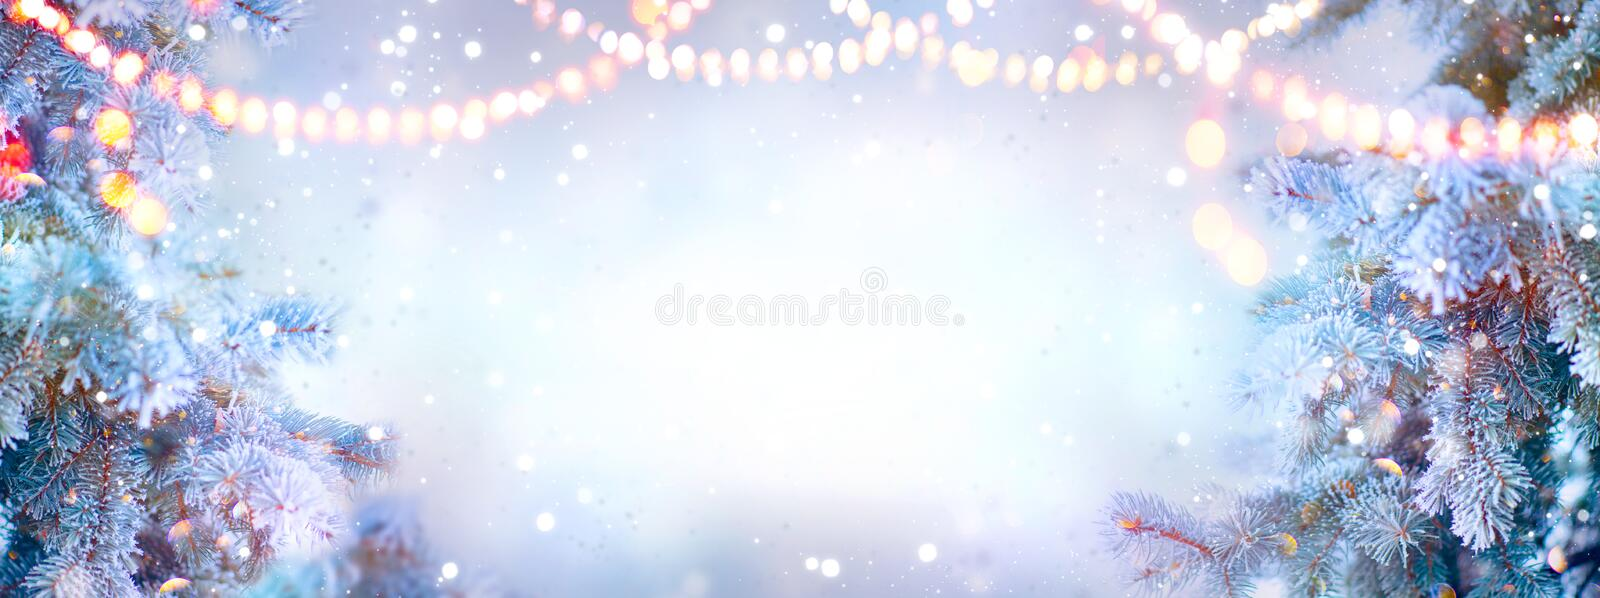 Christmas background. Xmas tree with snow decorated with garland lights, holiday festive backdround. Widescreen frame backdrop. New year Winter art design royalty free stock images